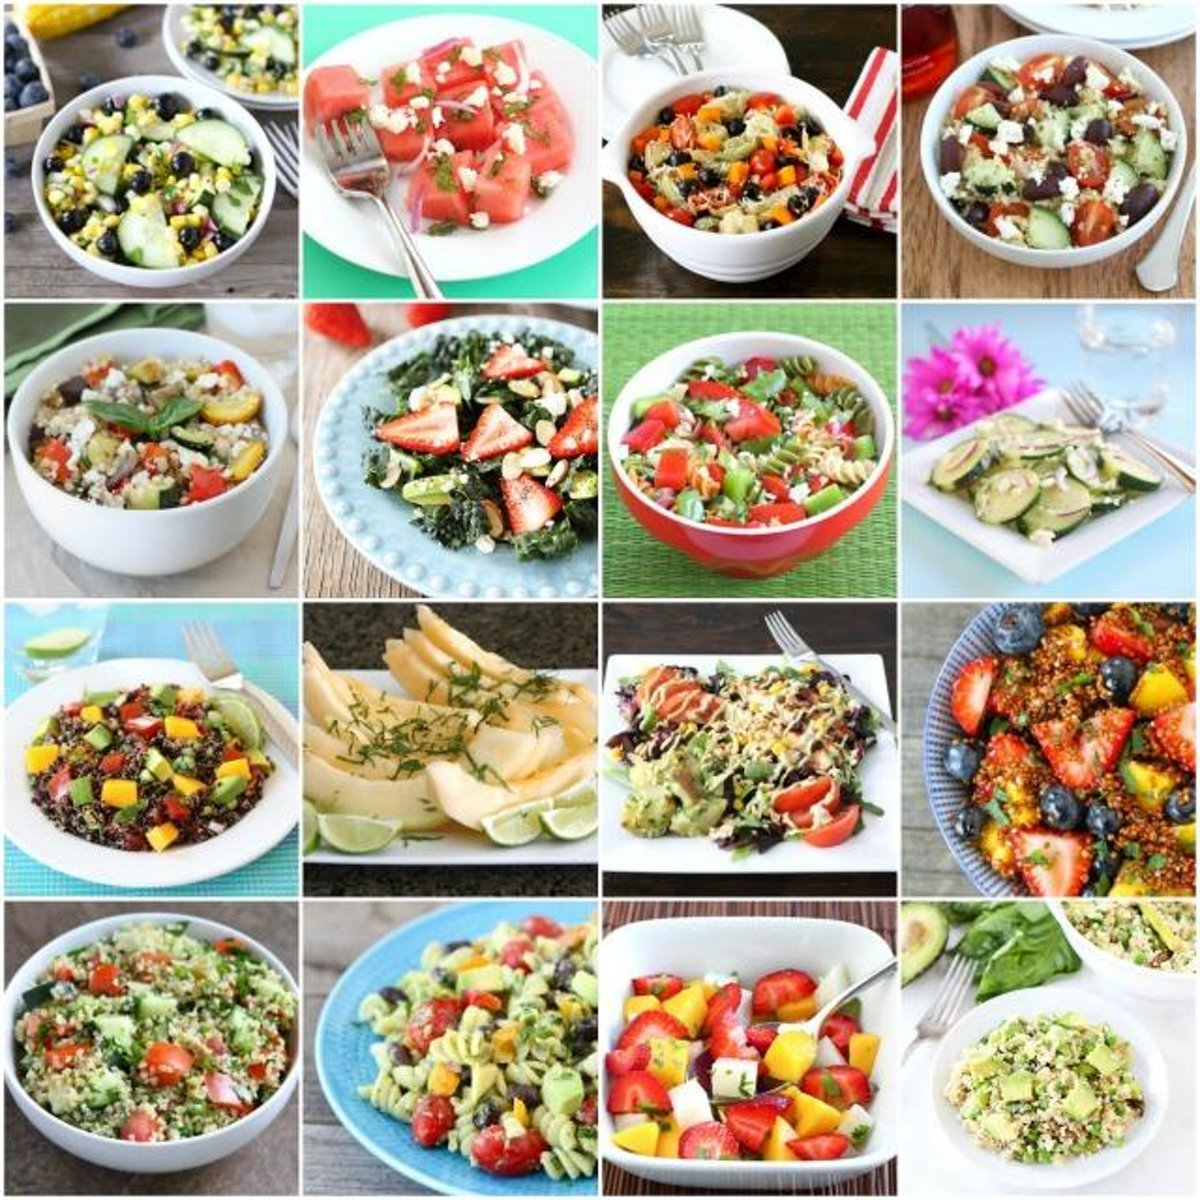 The Salad Cookbook - 2762 Recipes